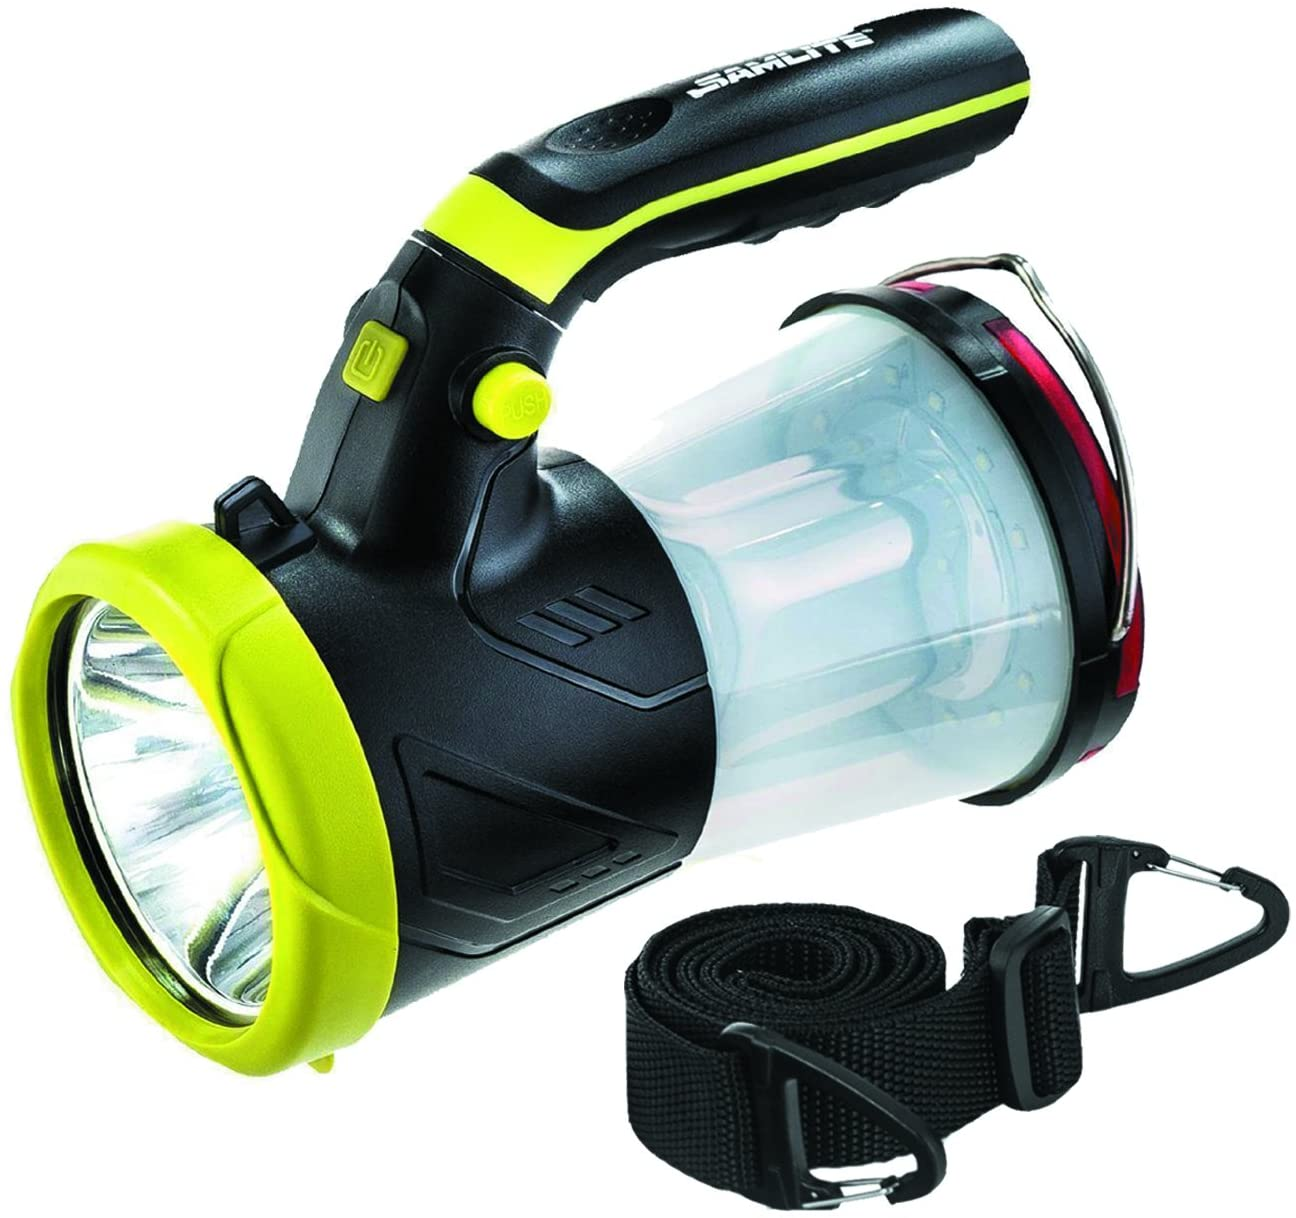 SAMLITE Rechargeable LED 4-in-1 Lantern Flashlight